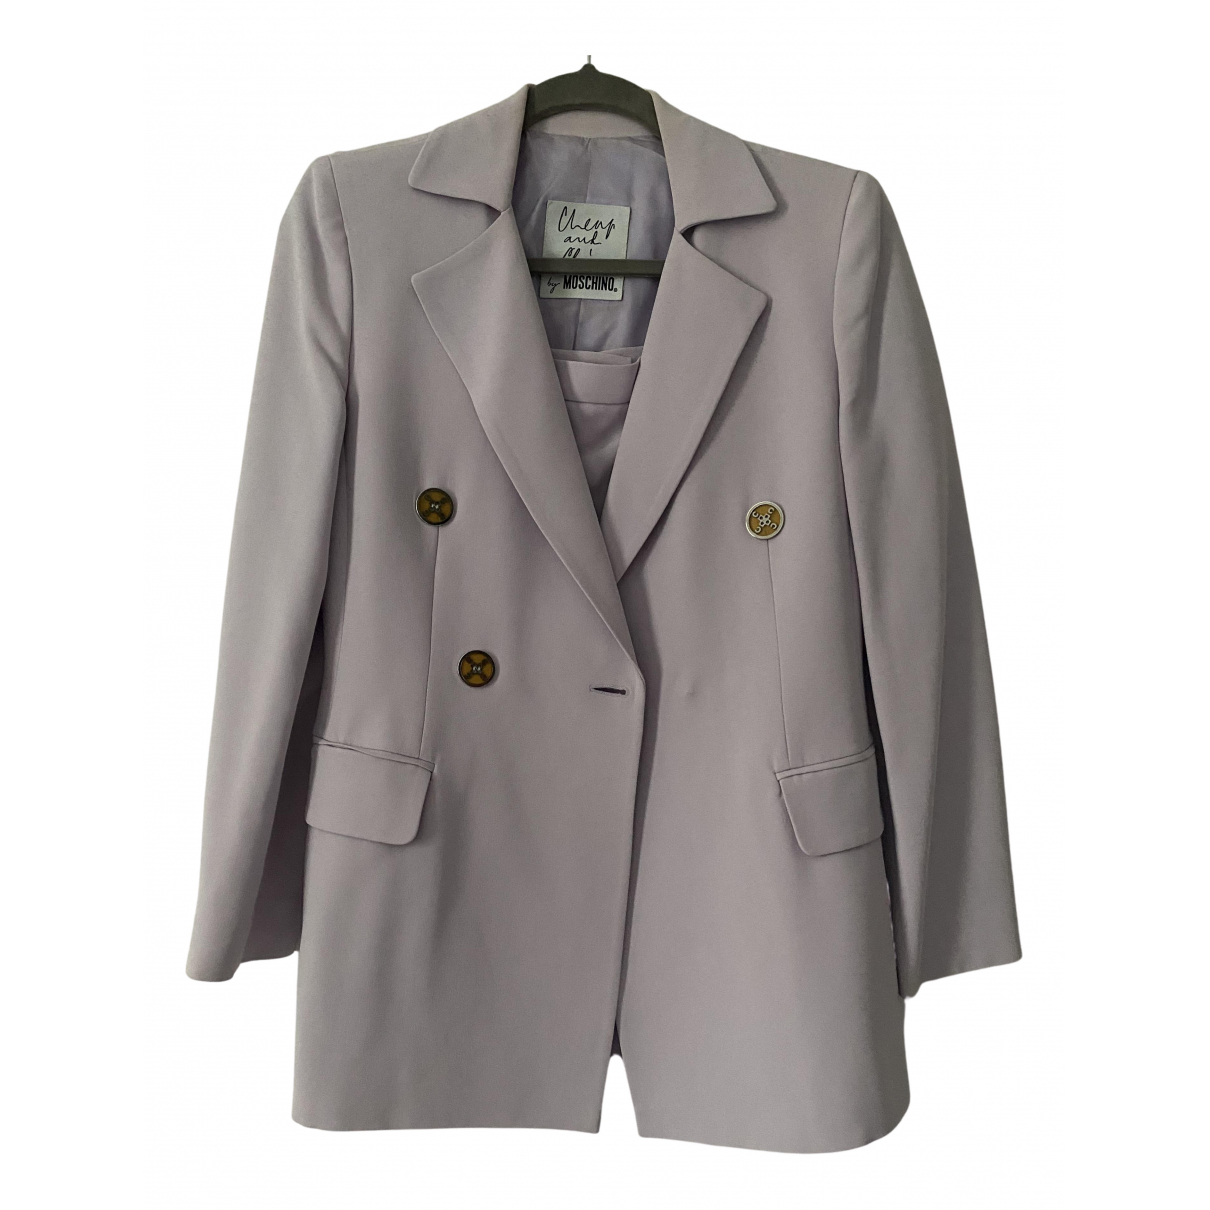 Moschino Cheap And Chic N Purple jacket for Women 10 UK